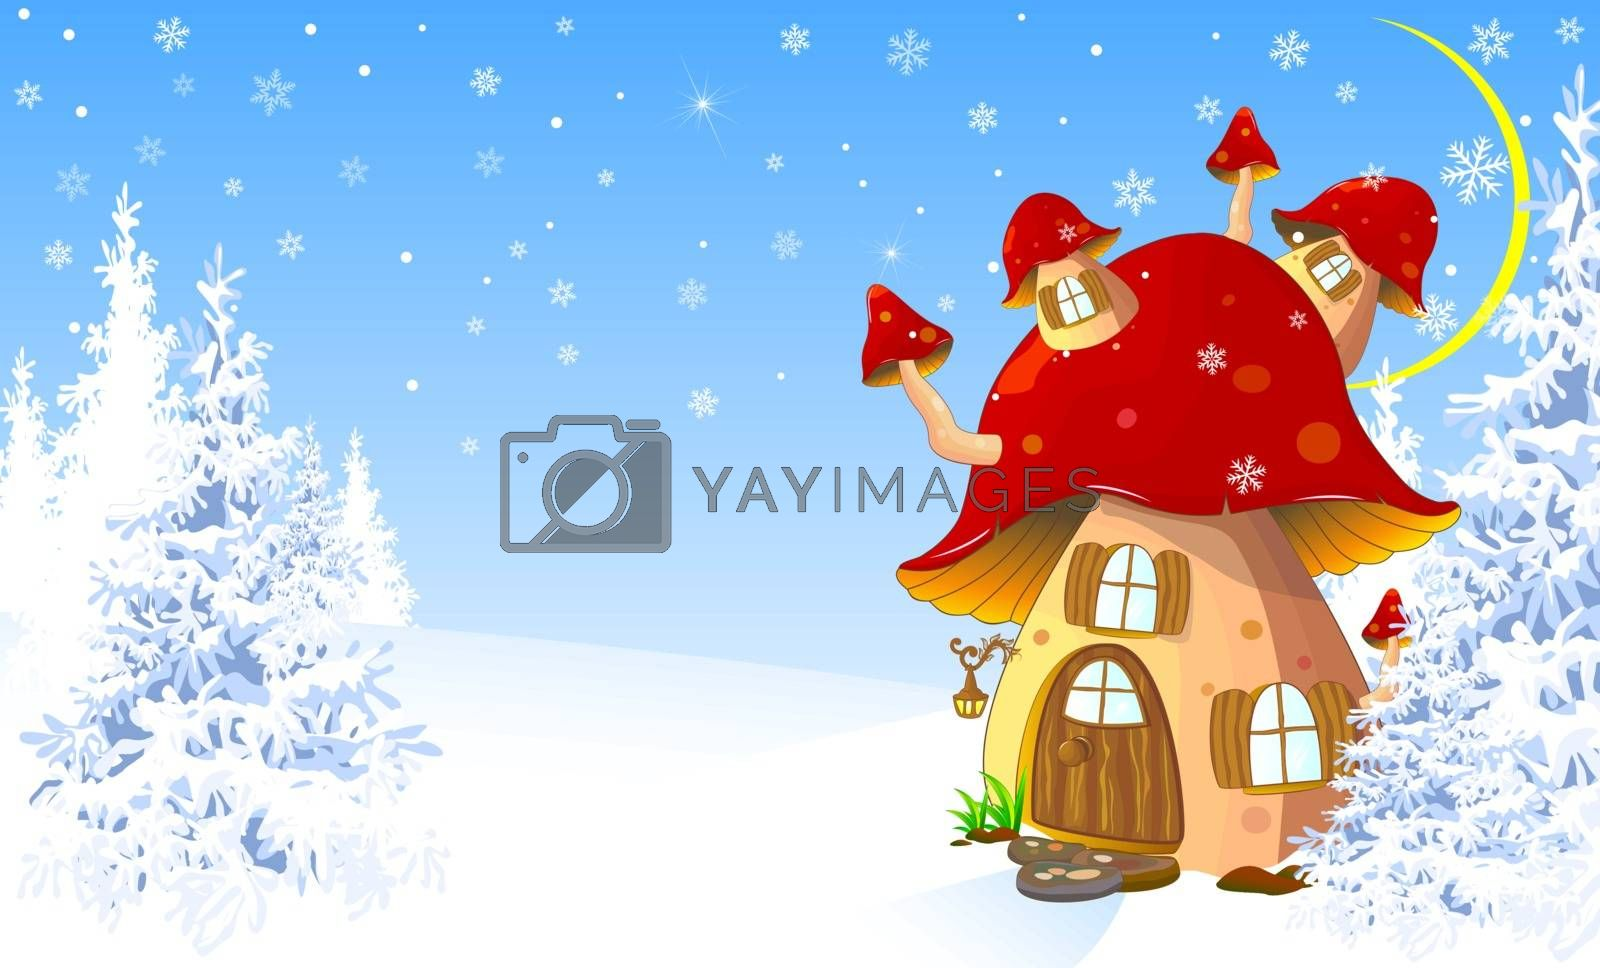 Cartoon mushroom house in the winter snow-covered forest.